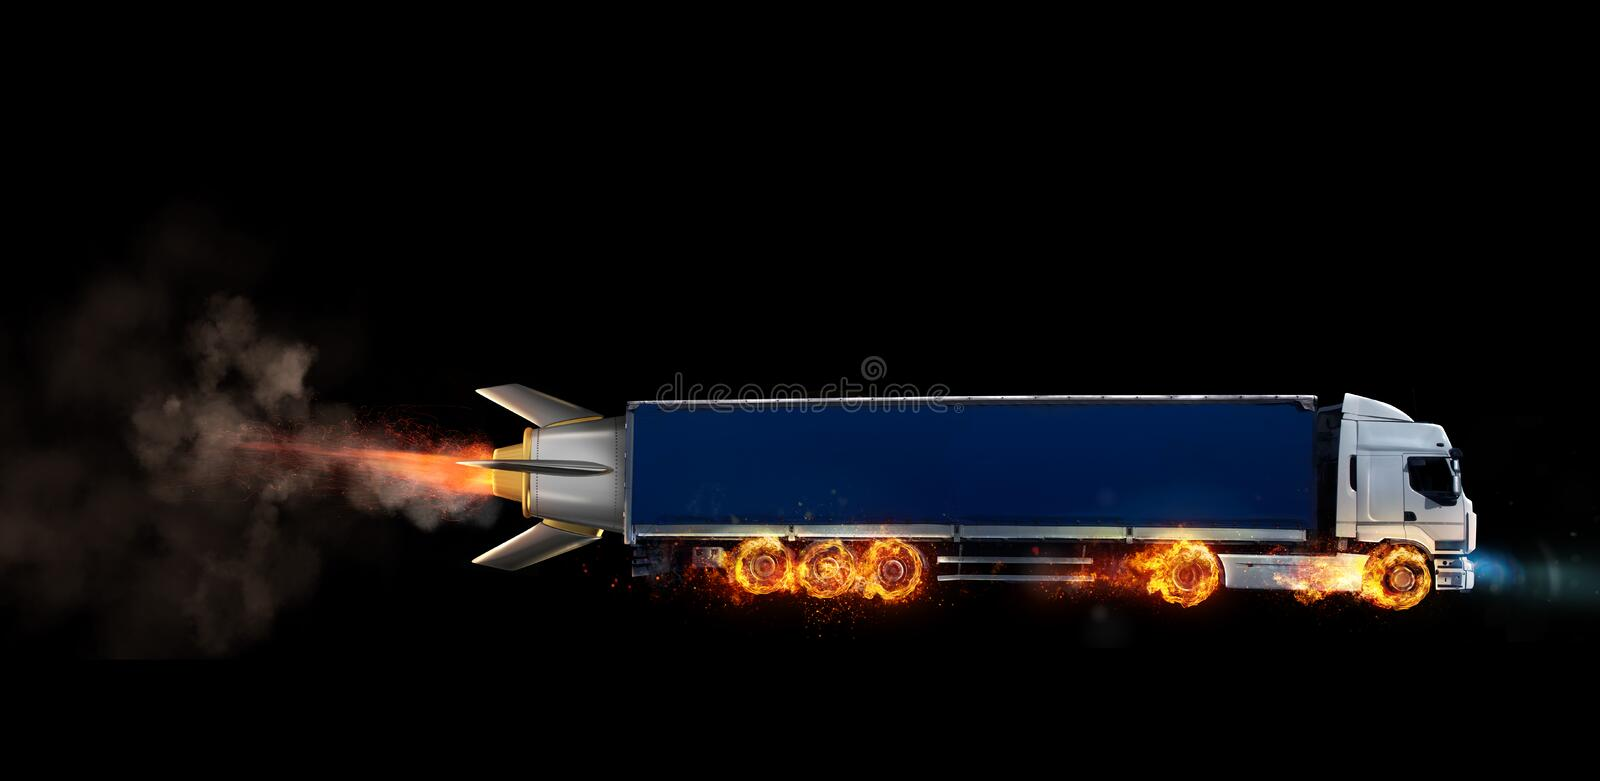 Super fast delivery of package service with a truck with wheels on fire stock image